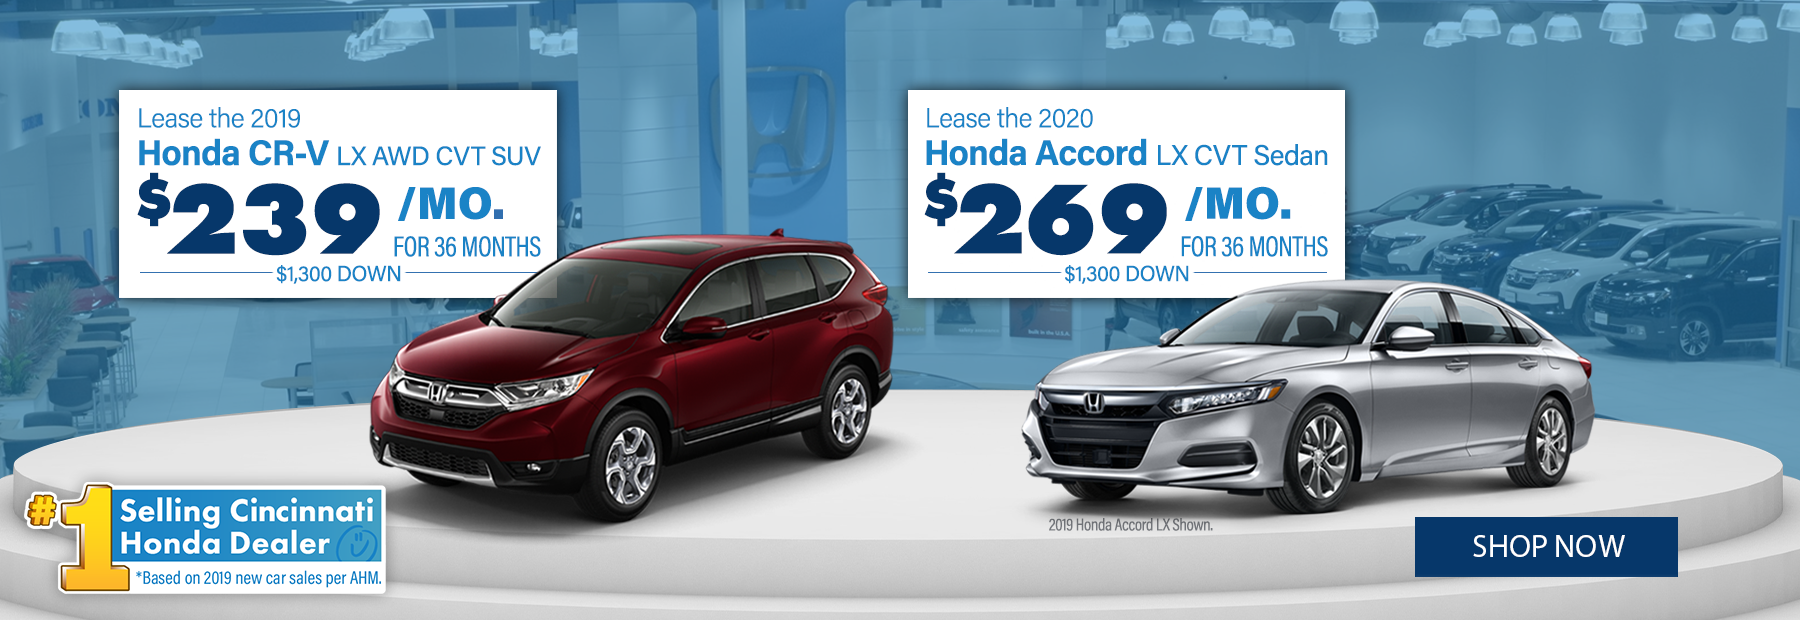 new-honda-accord-cr-v-lease-deals-cincinnati